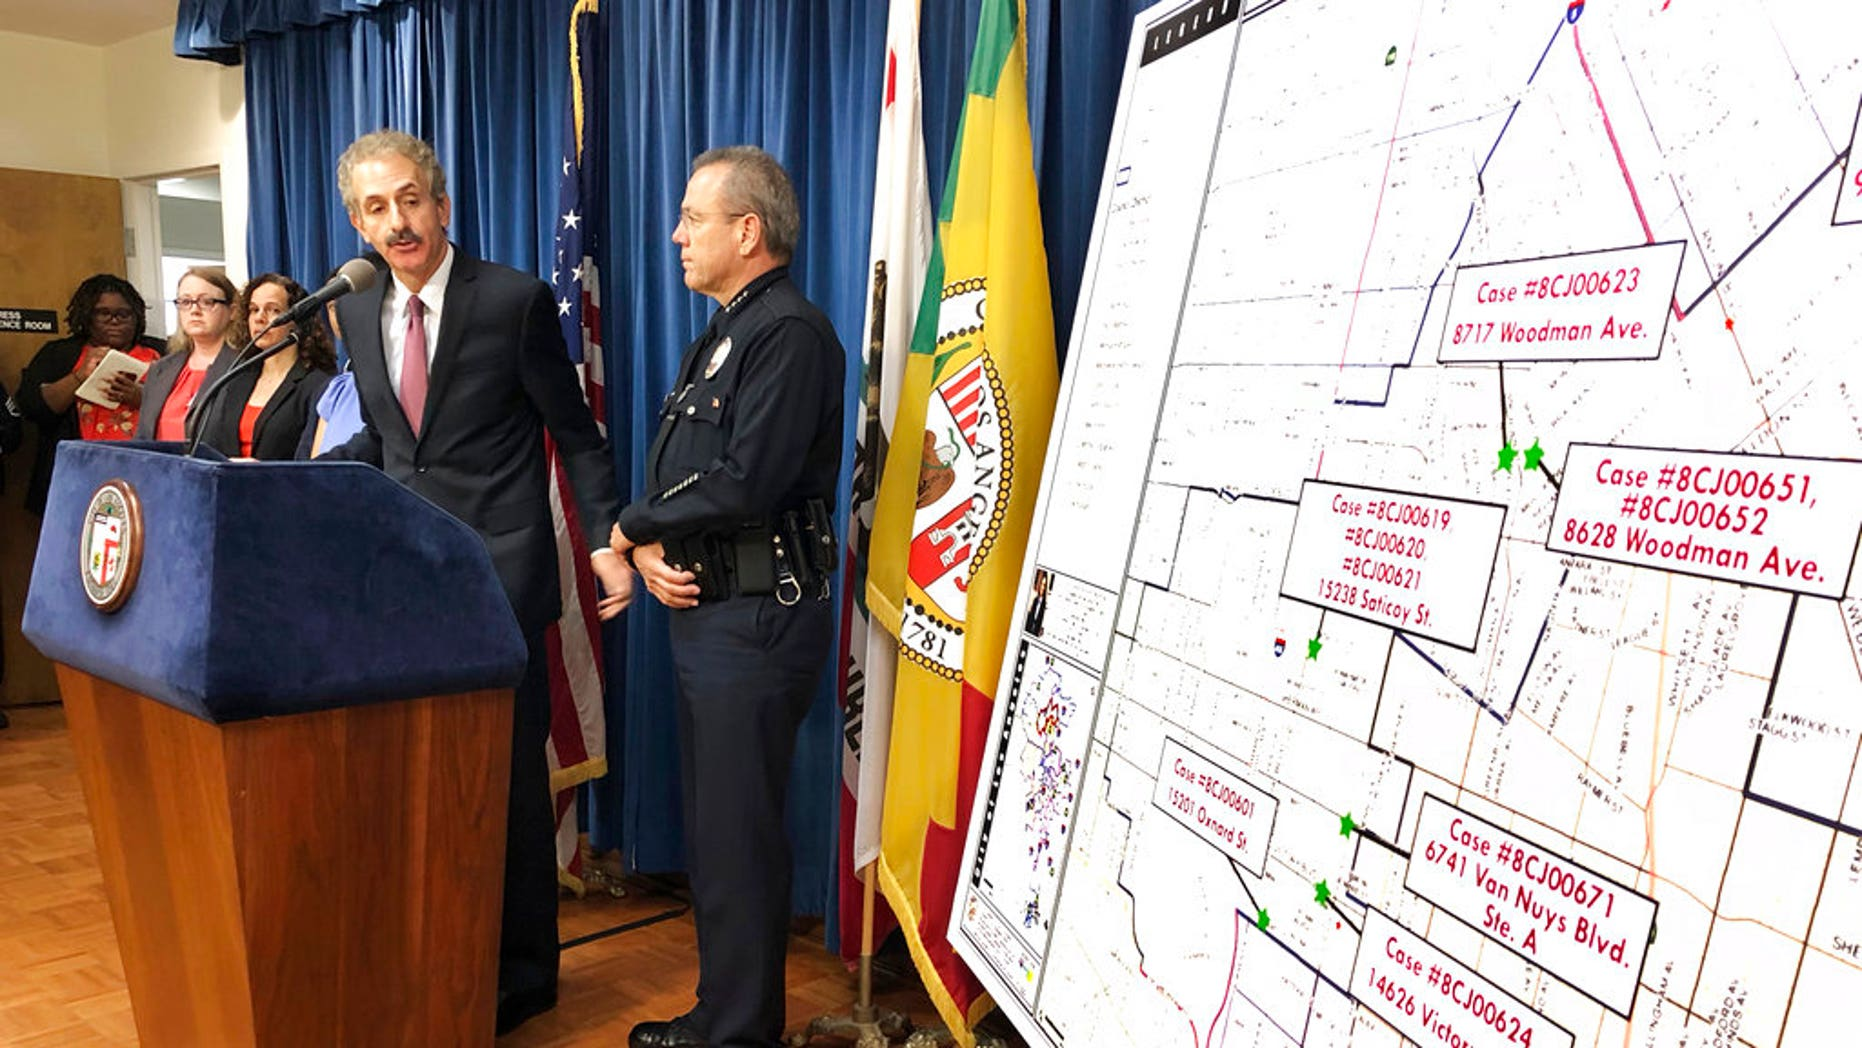 Los Angeles City Attorney Mike Feuer, at podium, and police Chief Michel Moore announce that prosecutors have charged more than 500 people with misdemeanors for illegal marijuana operations, at a news conference in Los Angeles, Sept. 7, 2018.